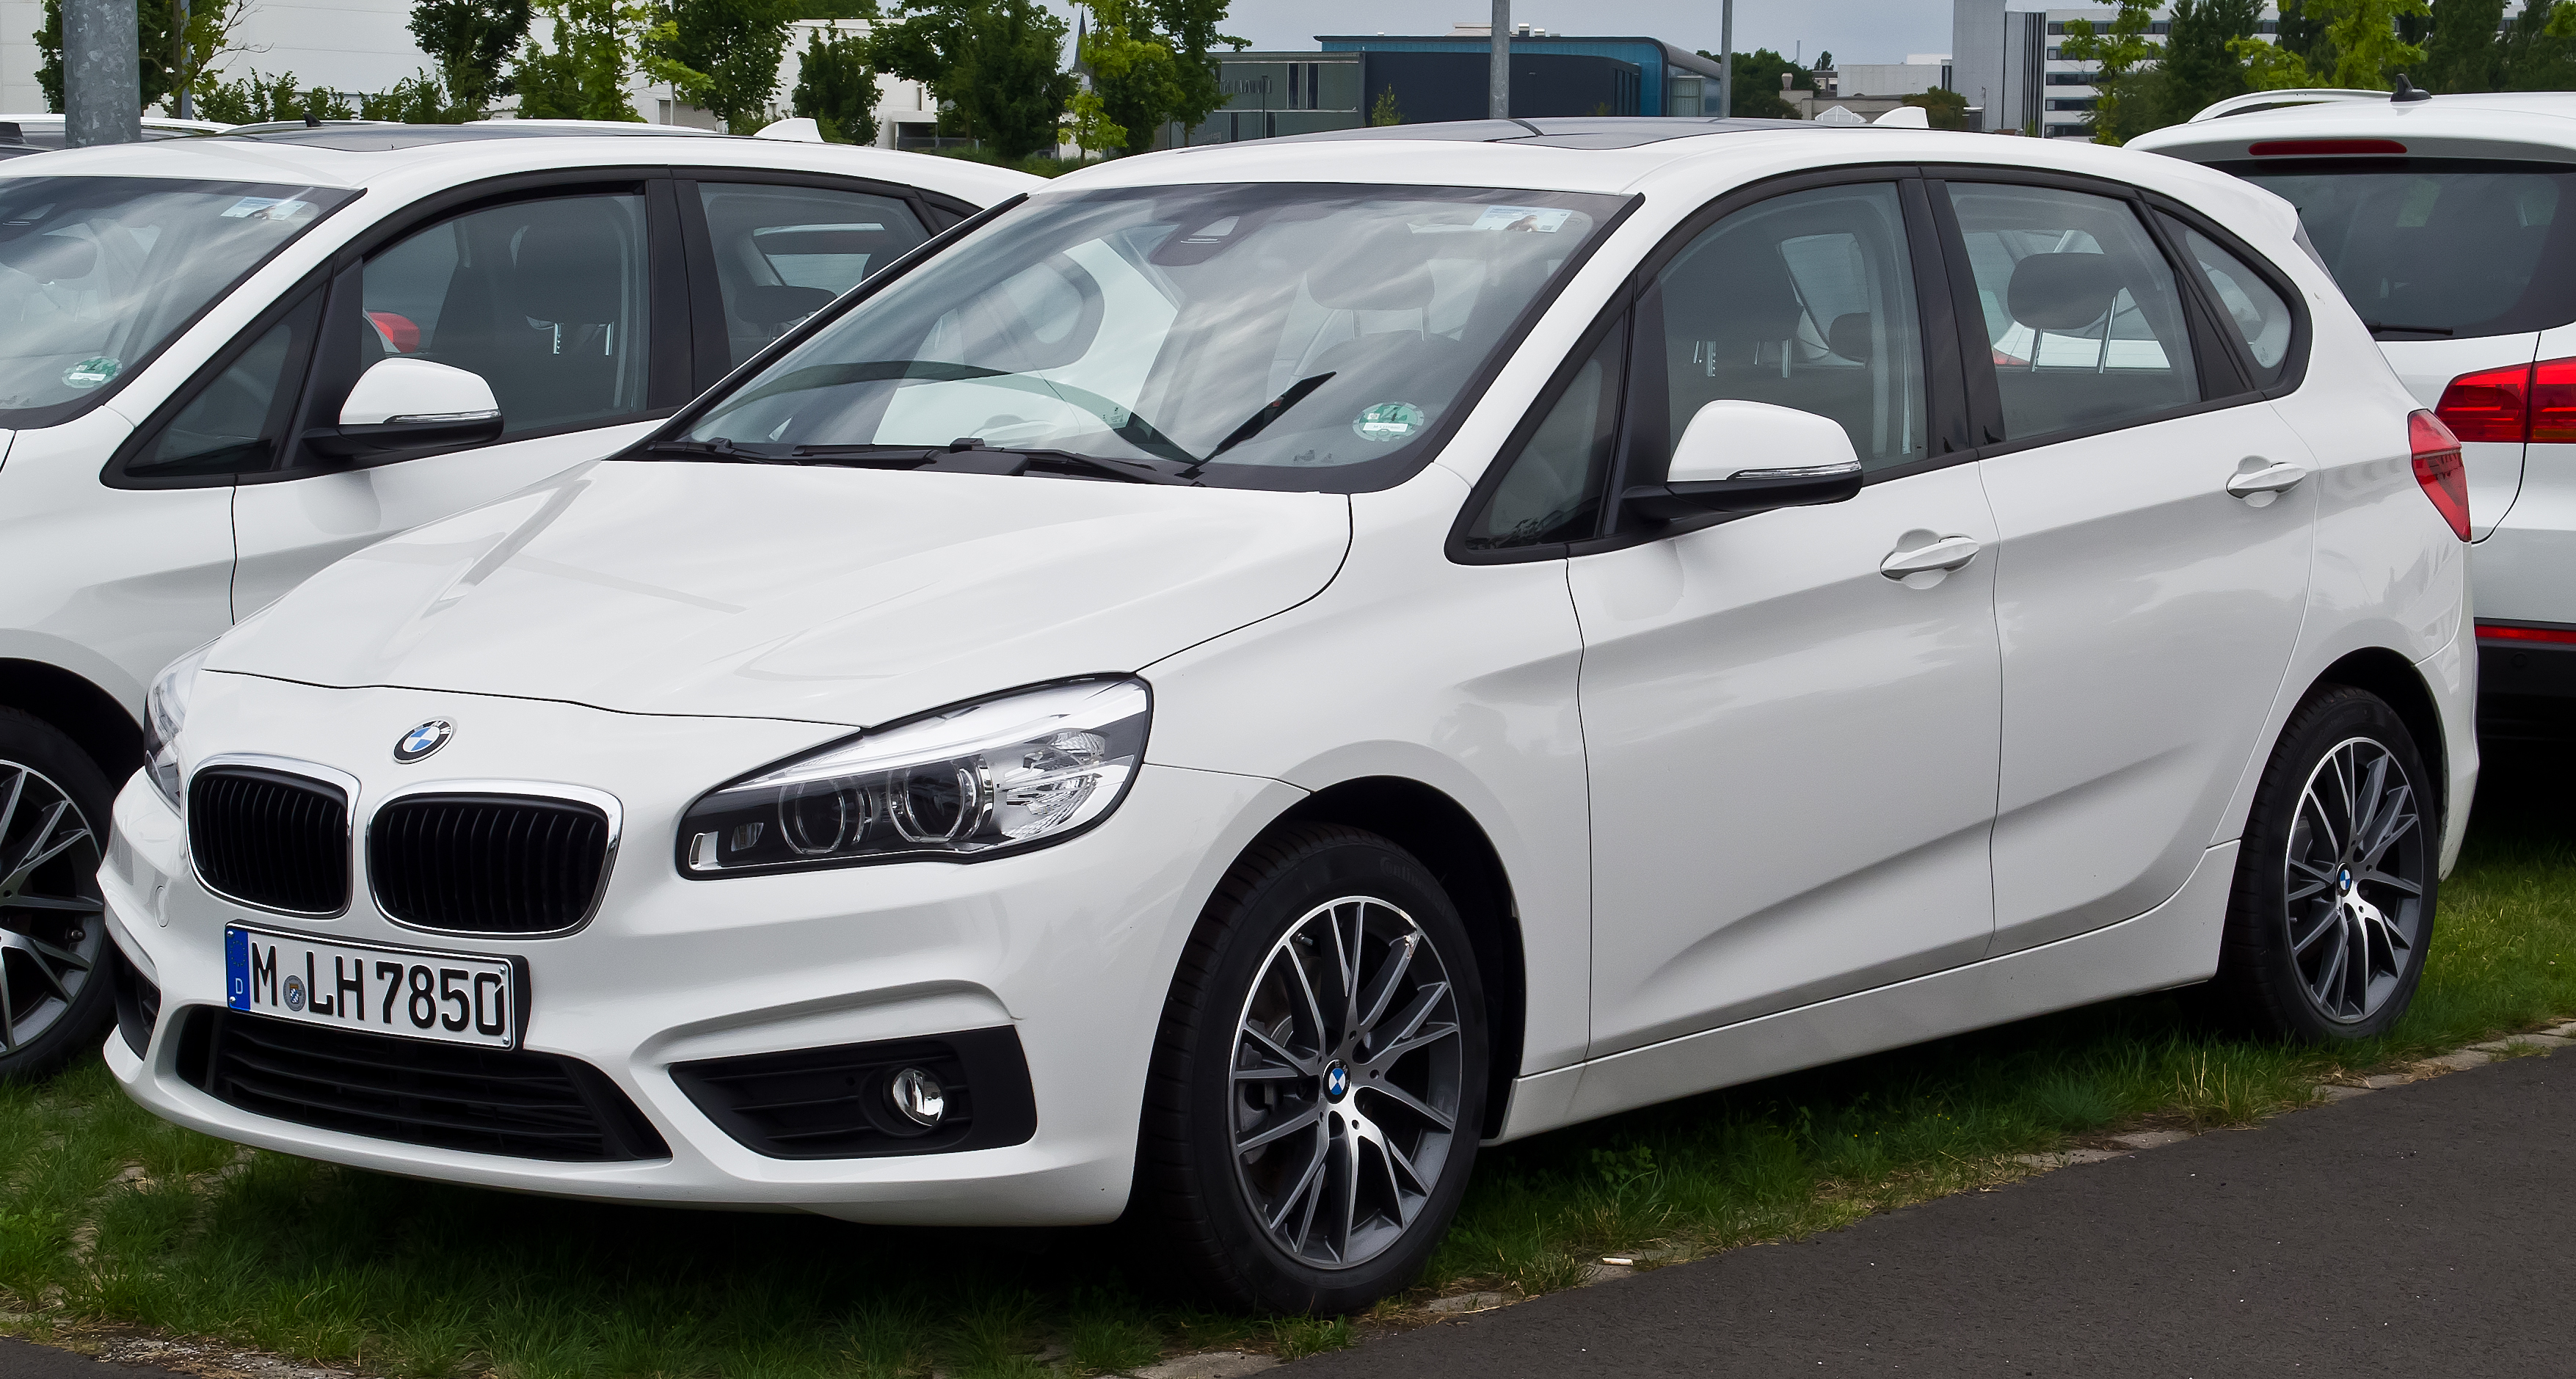 Bmw Serii 2 Active Tourer Wikipedia Wolna Encyklopedia